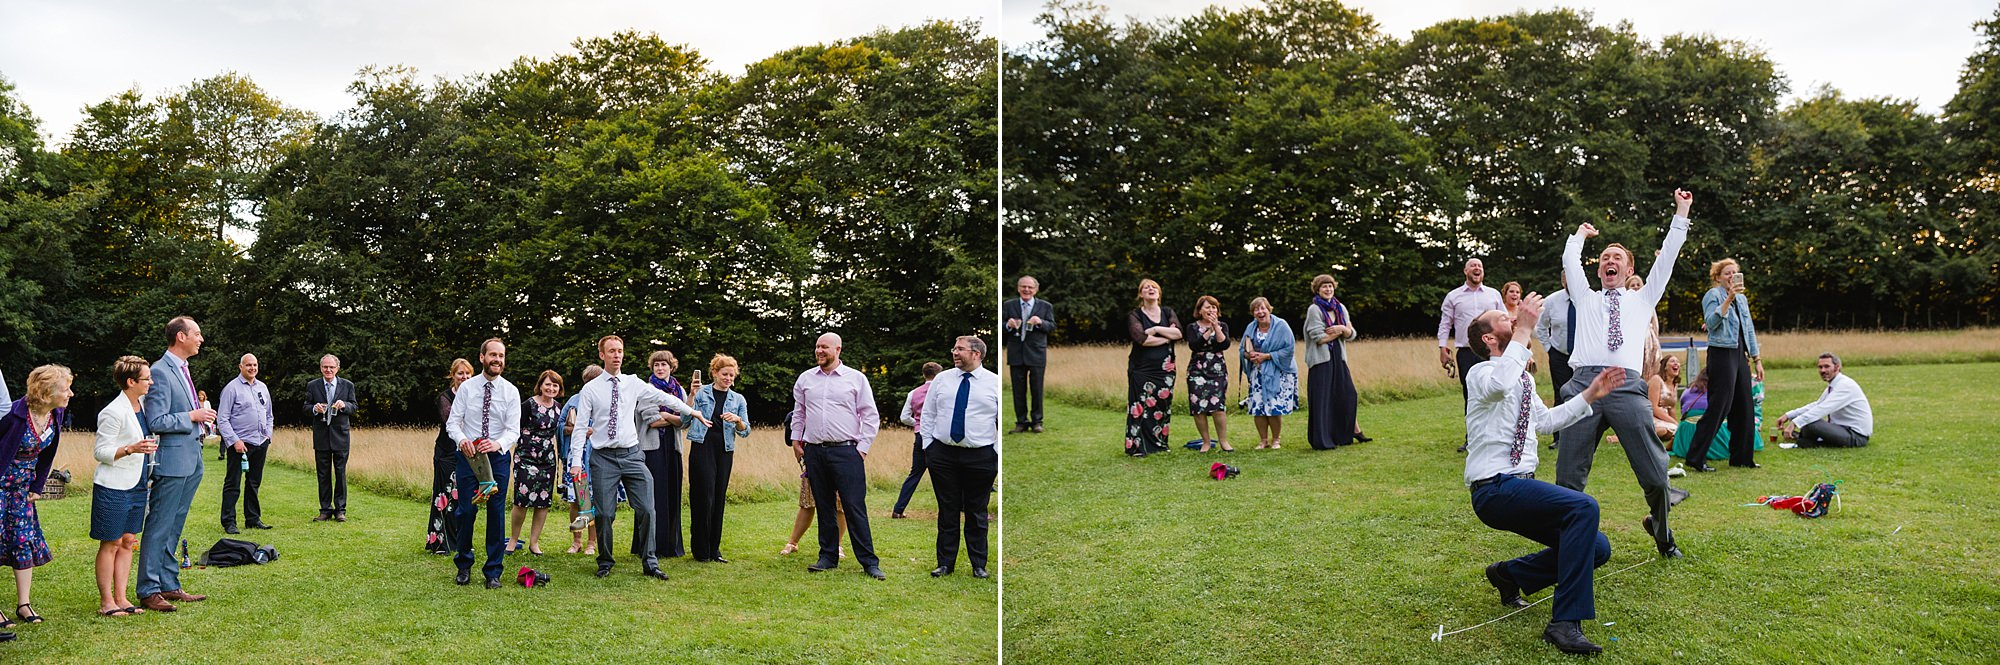 Woodland Weddings Tring welly wanging